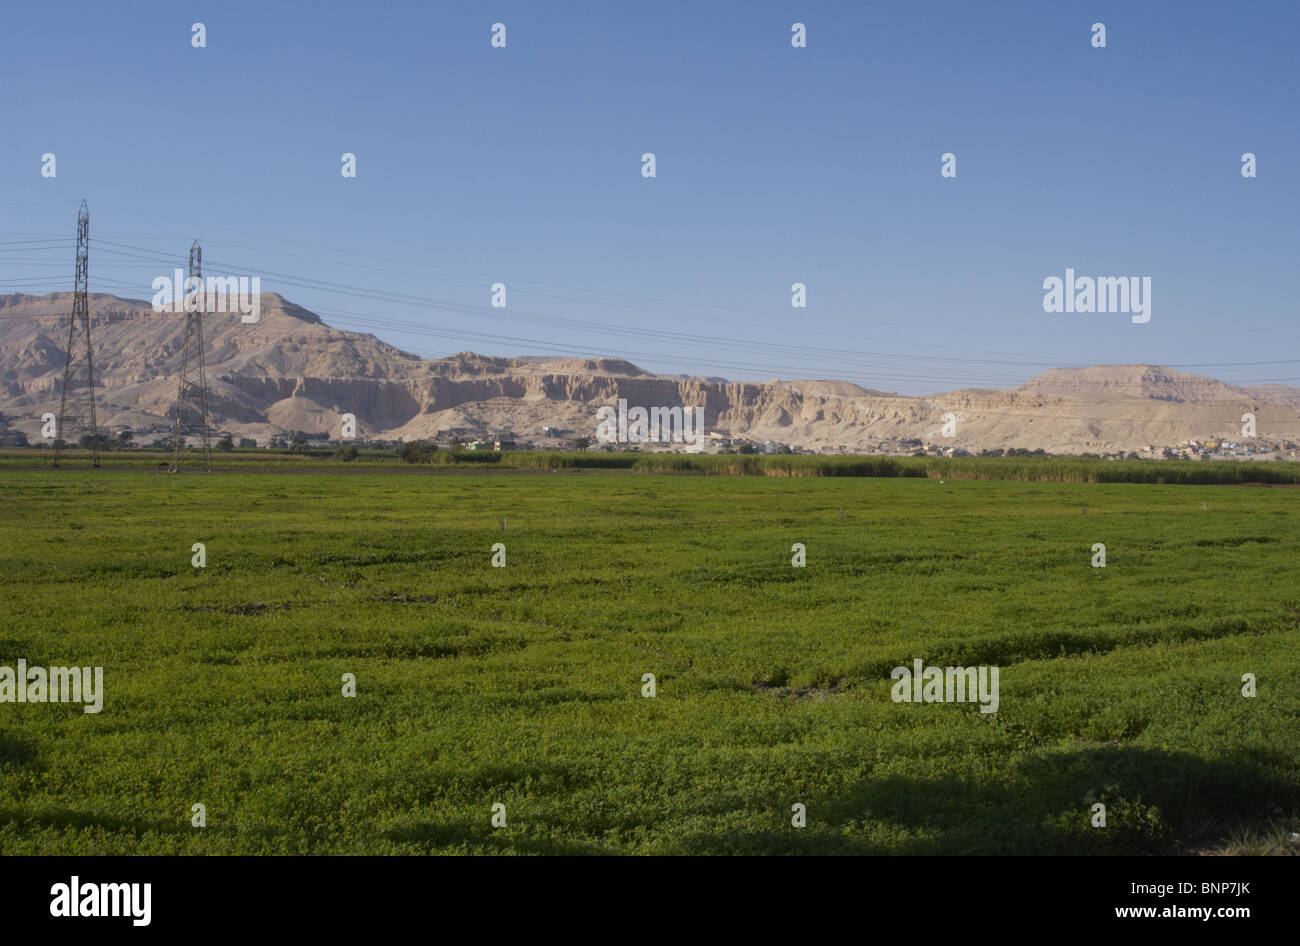 Egypt. Luxor. Agricultural area. Arid zone at the borrom. - Stock Image